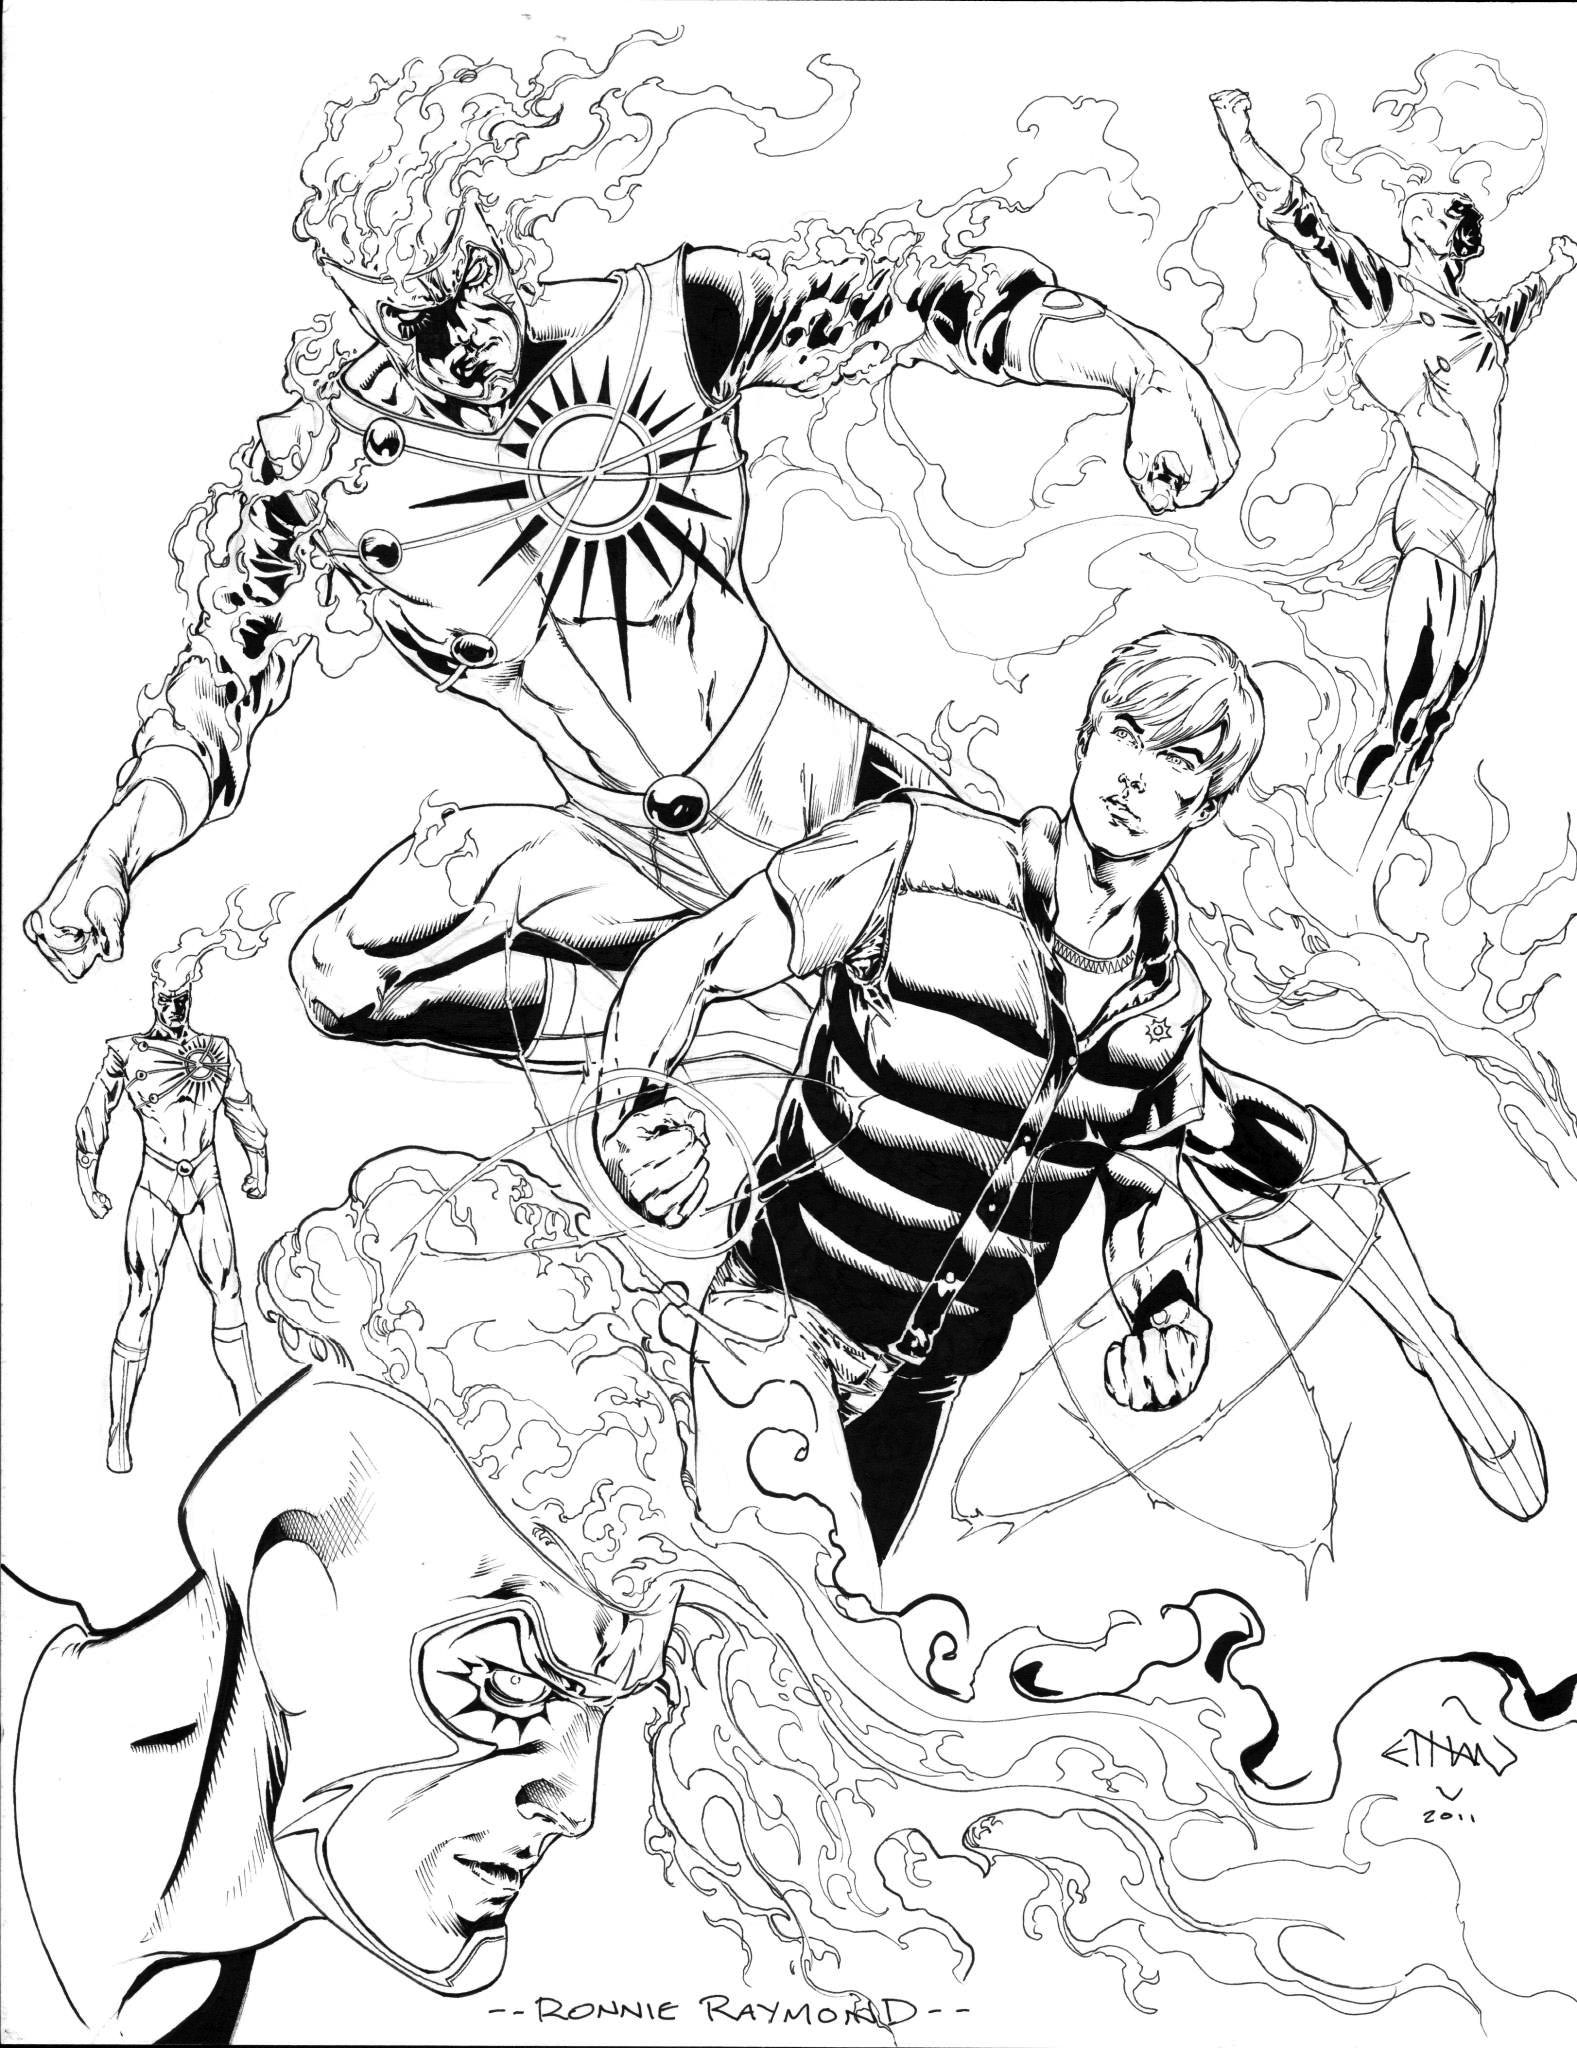 Ethan Van Sciver's concept artwork for the Ronnie Raymond Firestorm